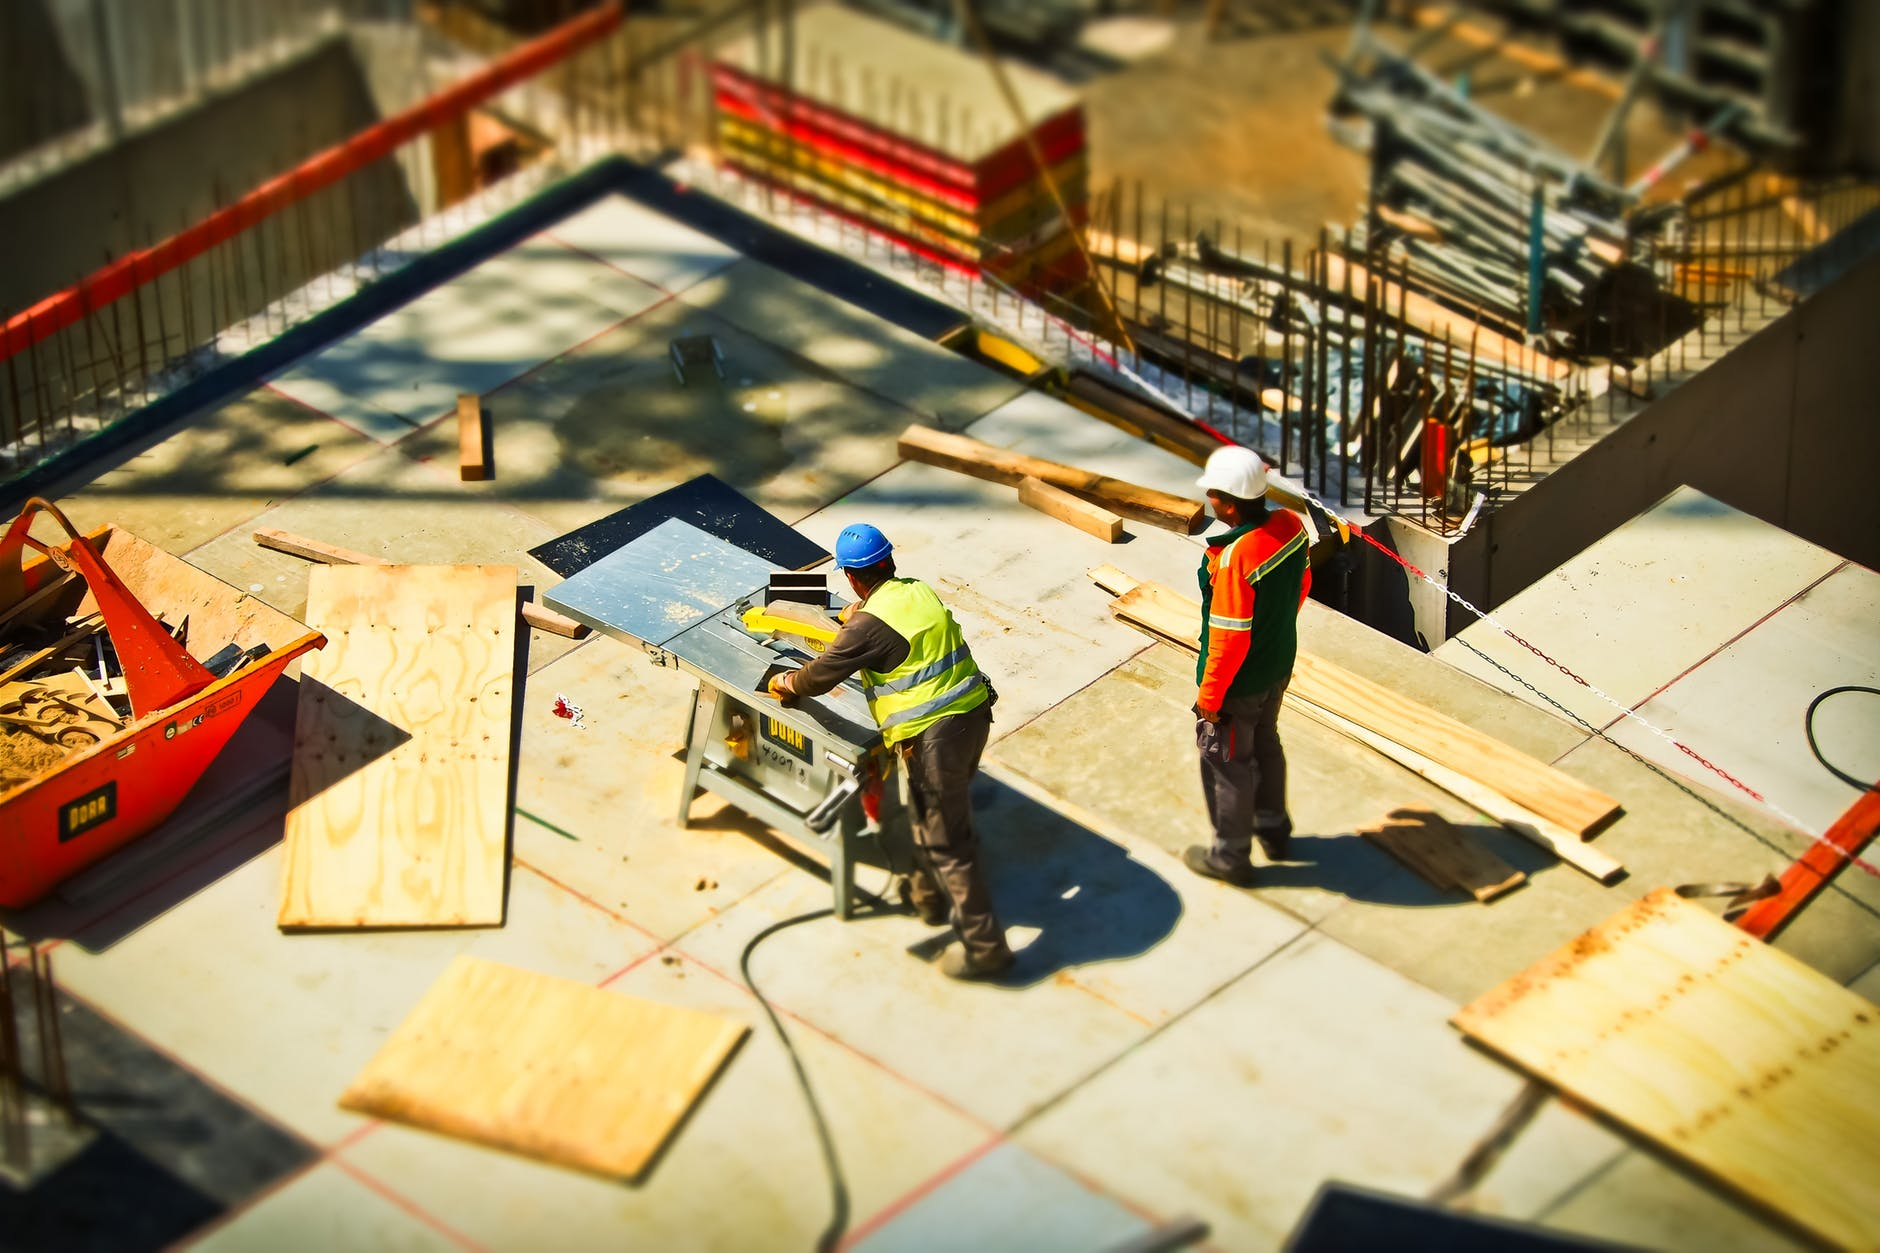 Workers on a building construction site